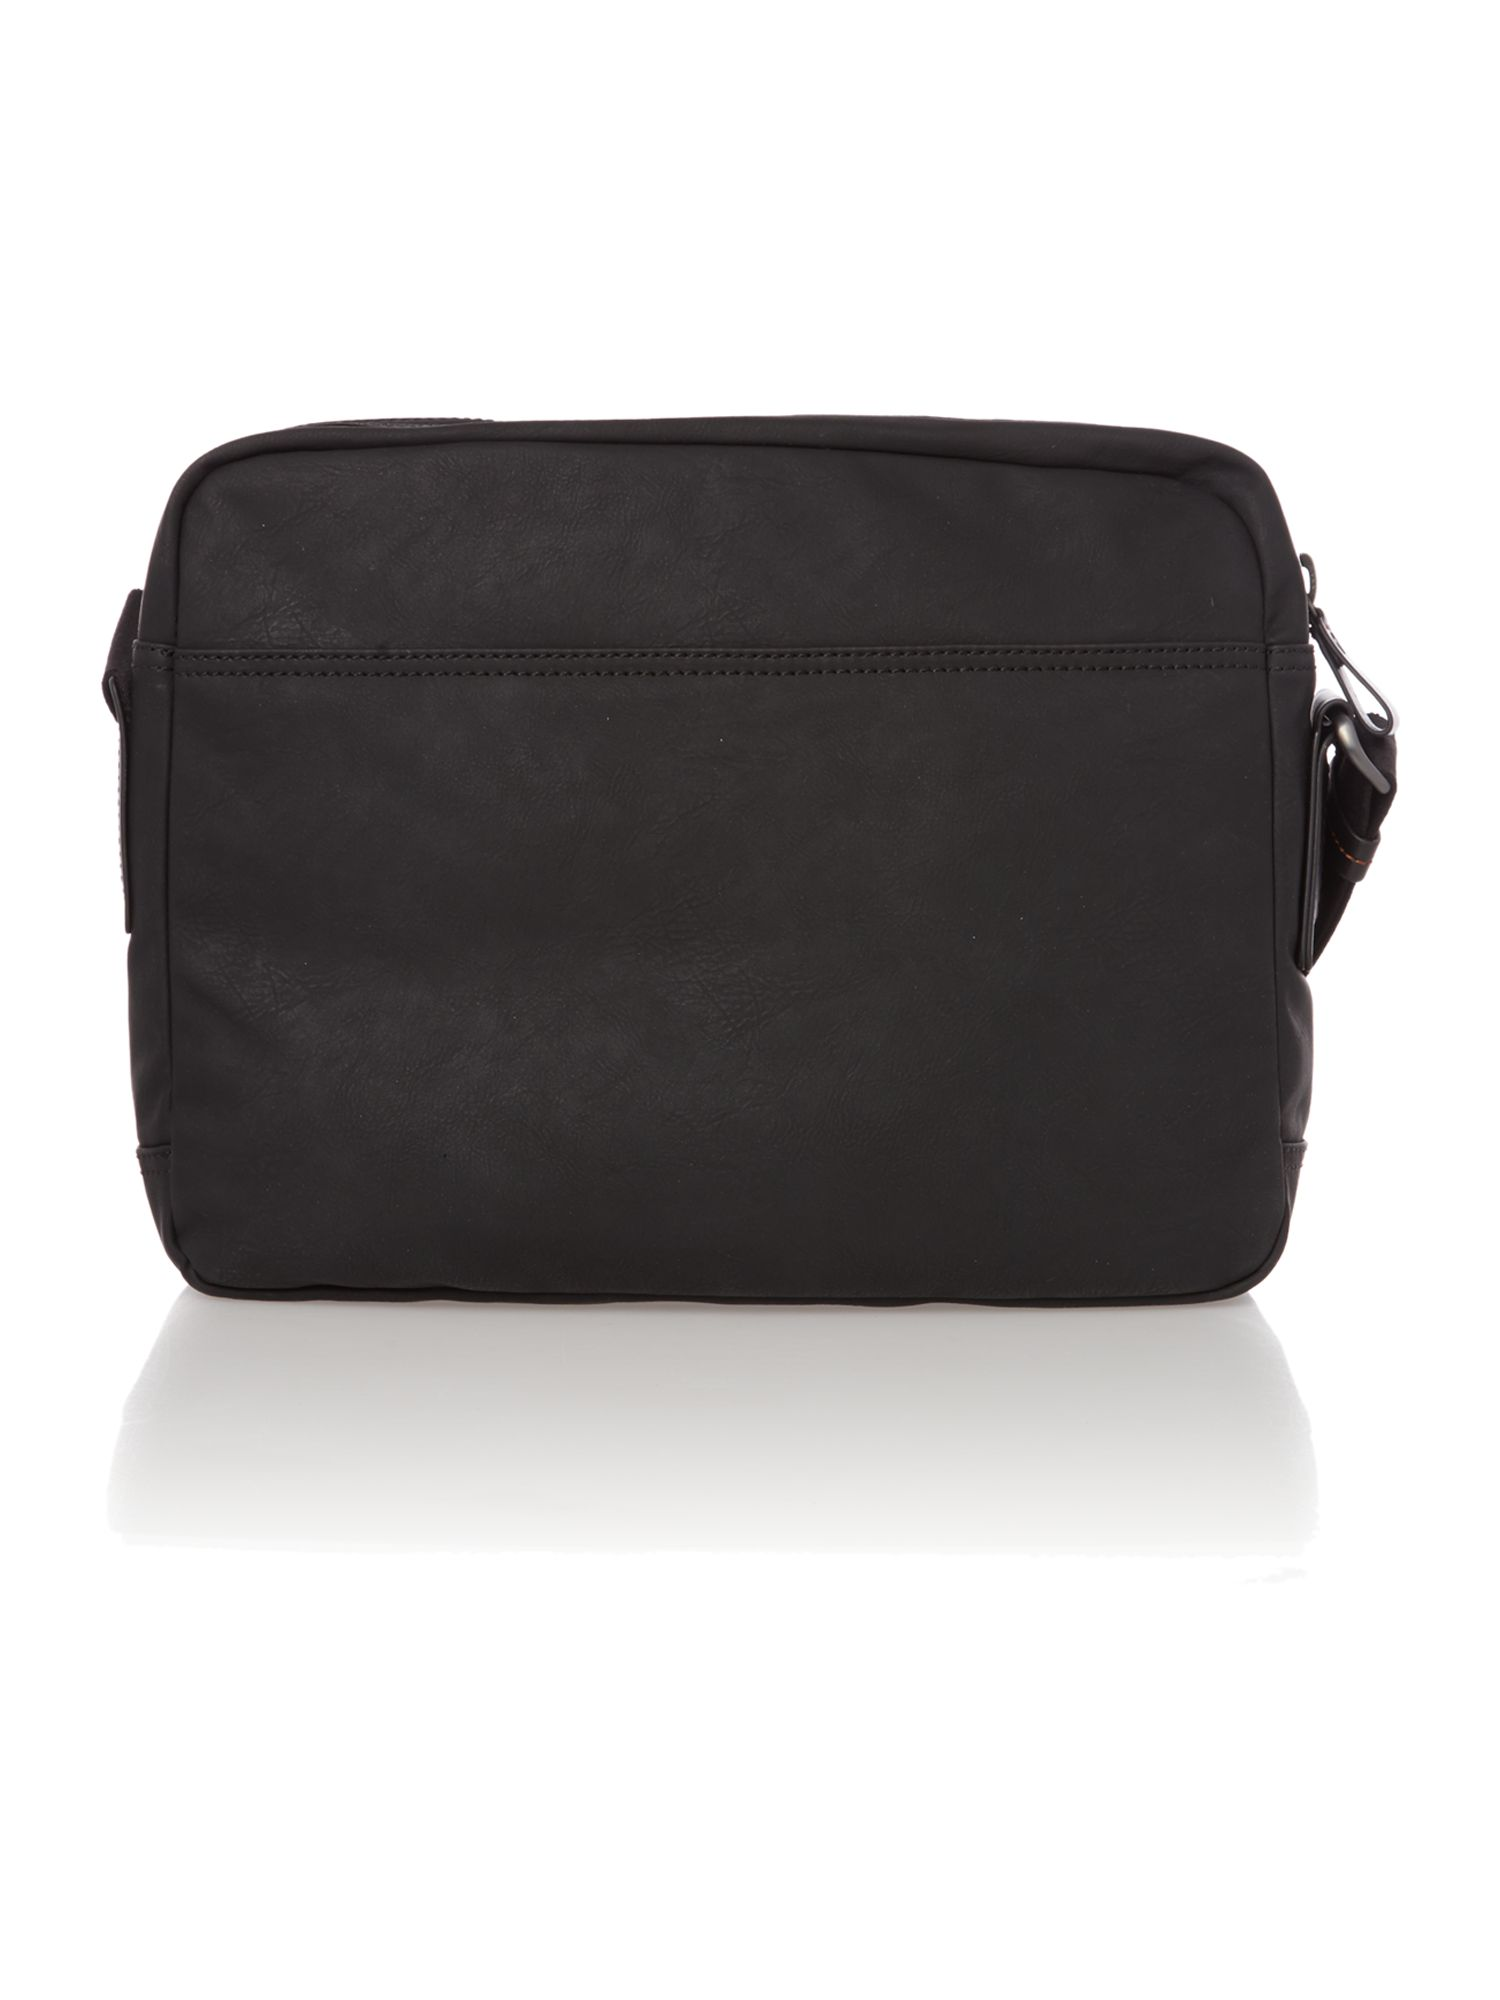 Vitals messenger bag